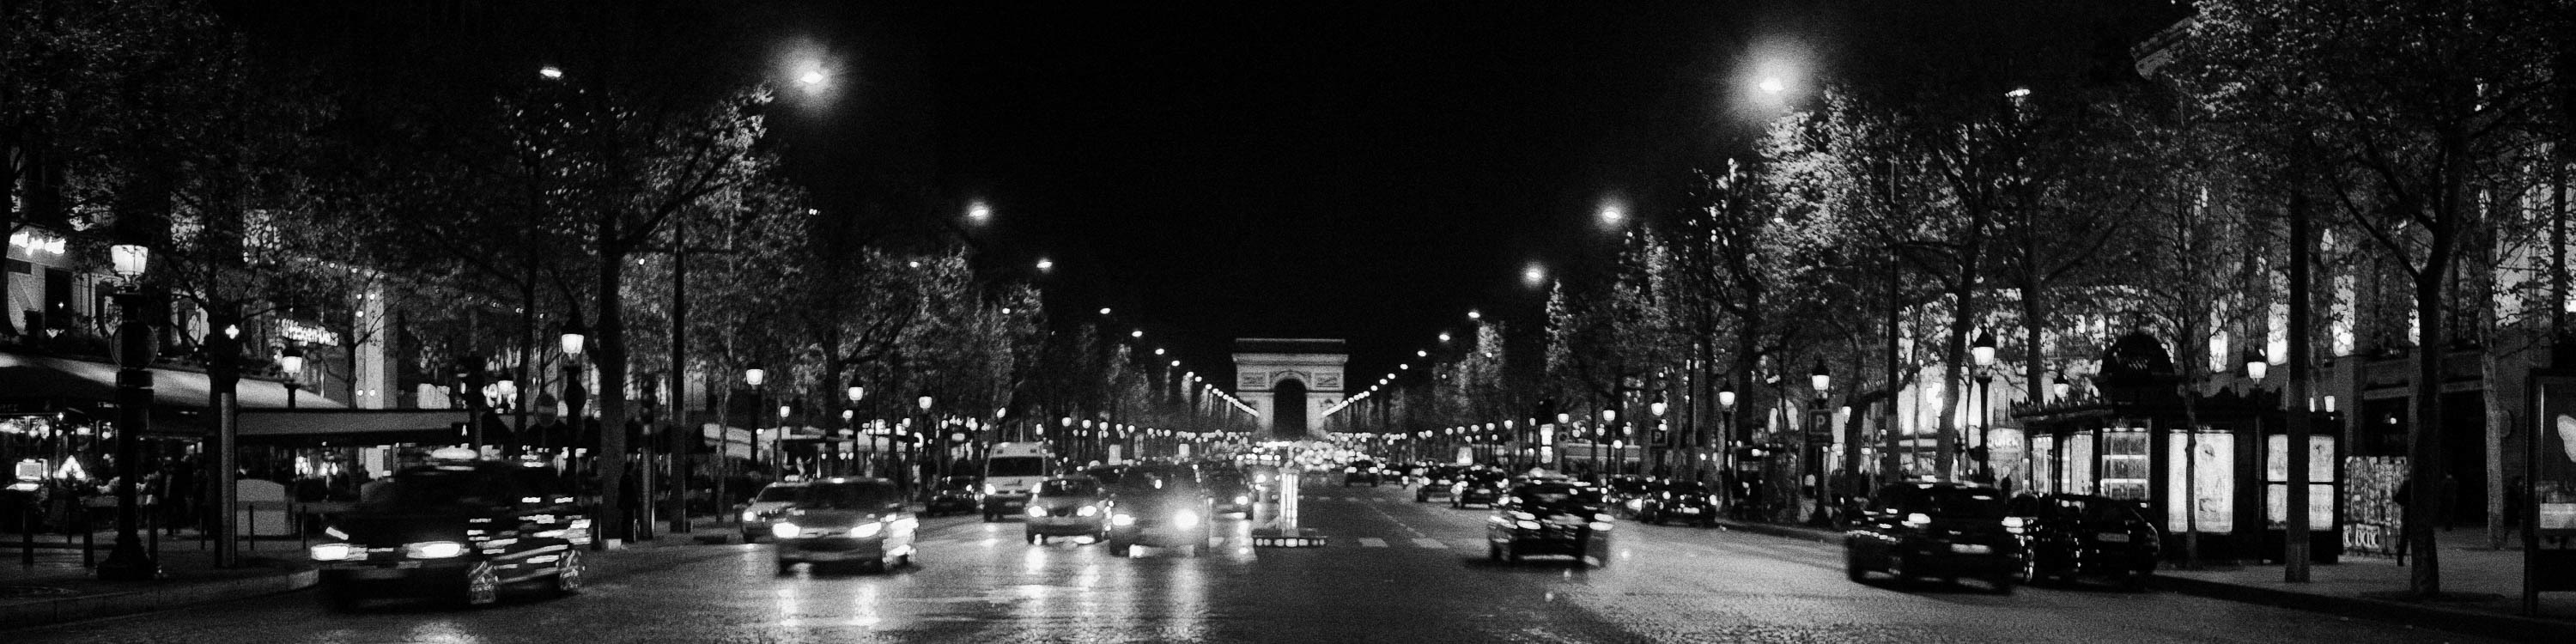 <div class='title'>           Avenue-des-Champs-Elysees--Paris--France-Paris2008-24Apr2008-0565-BW-ASB-gwtuxx         </div>